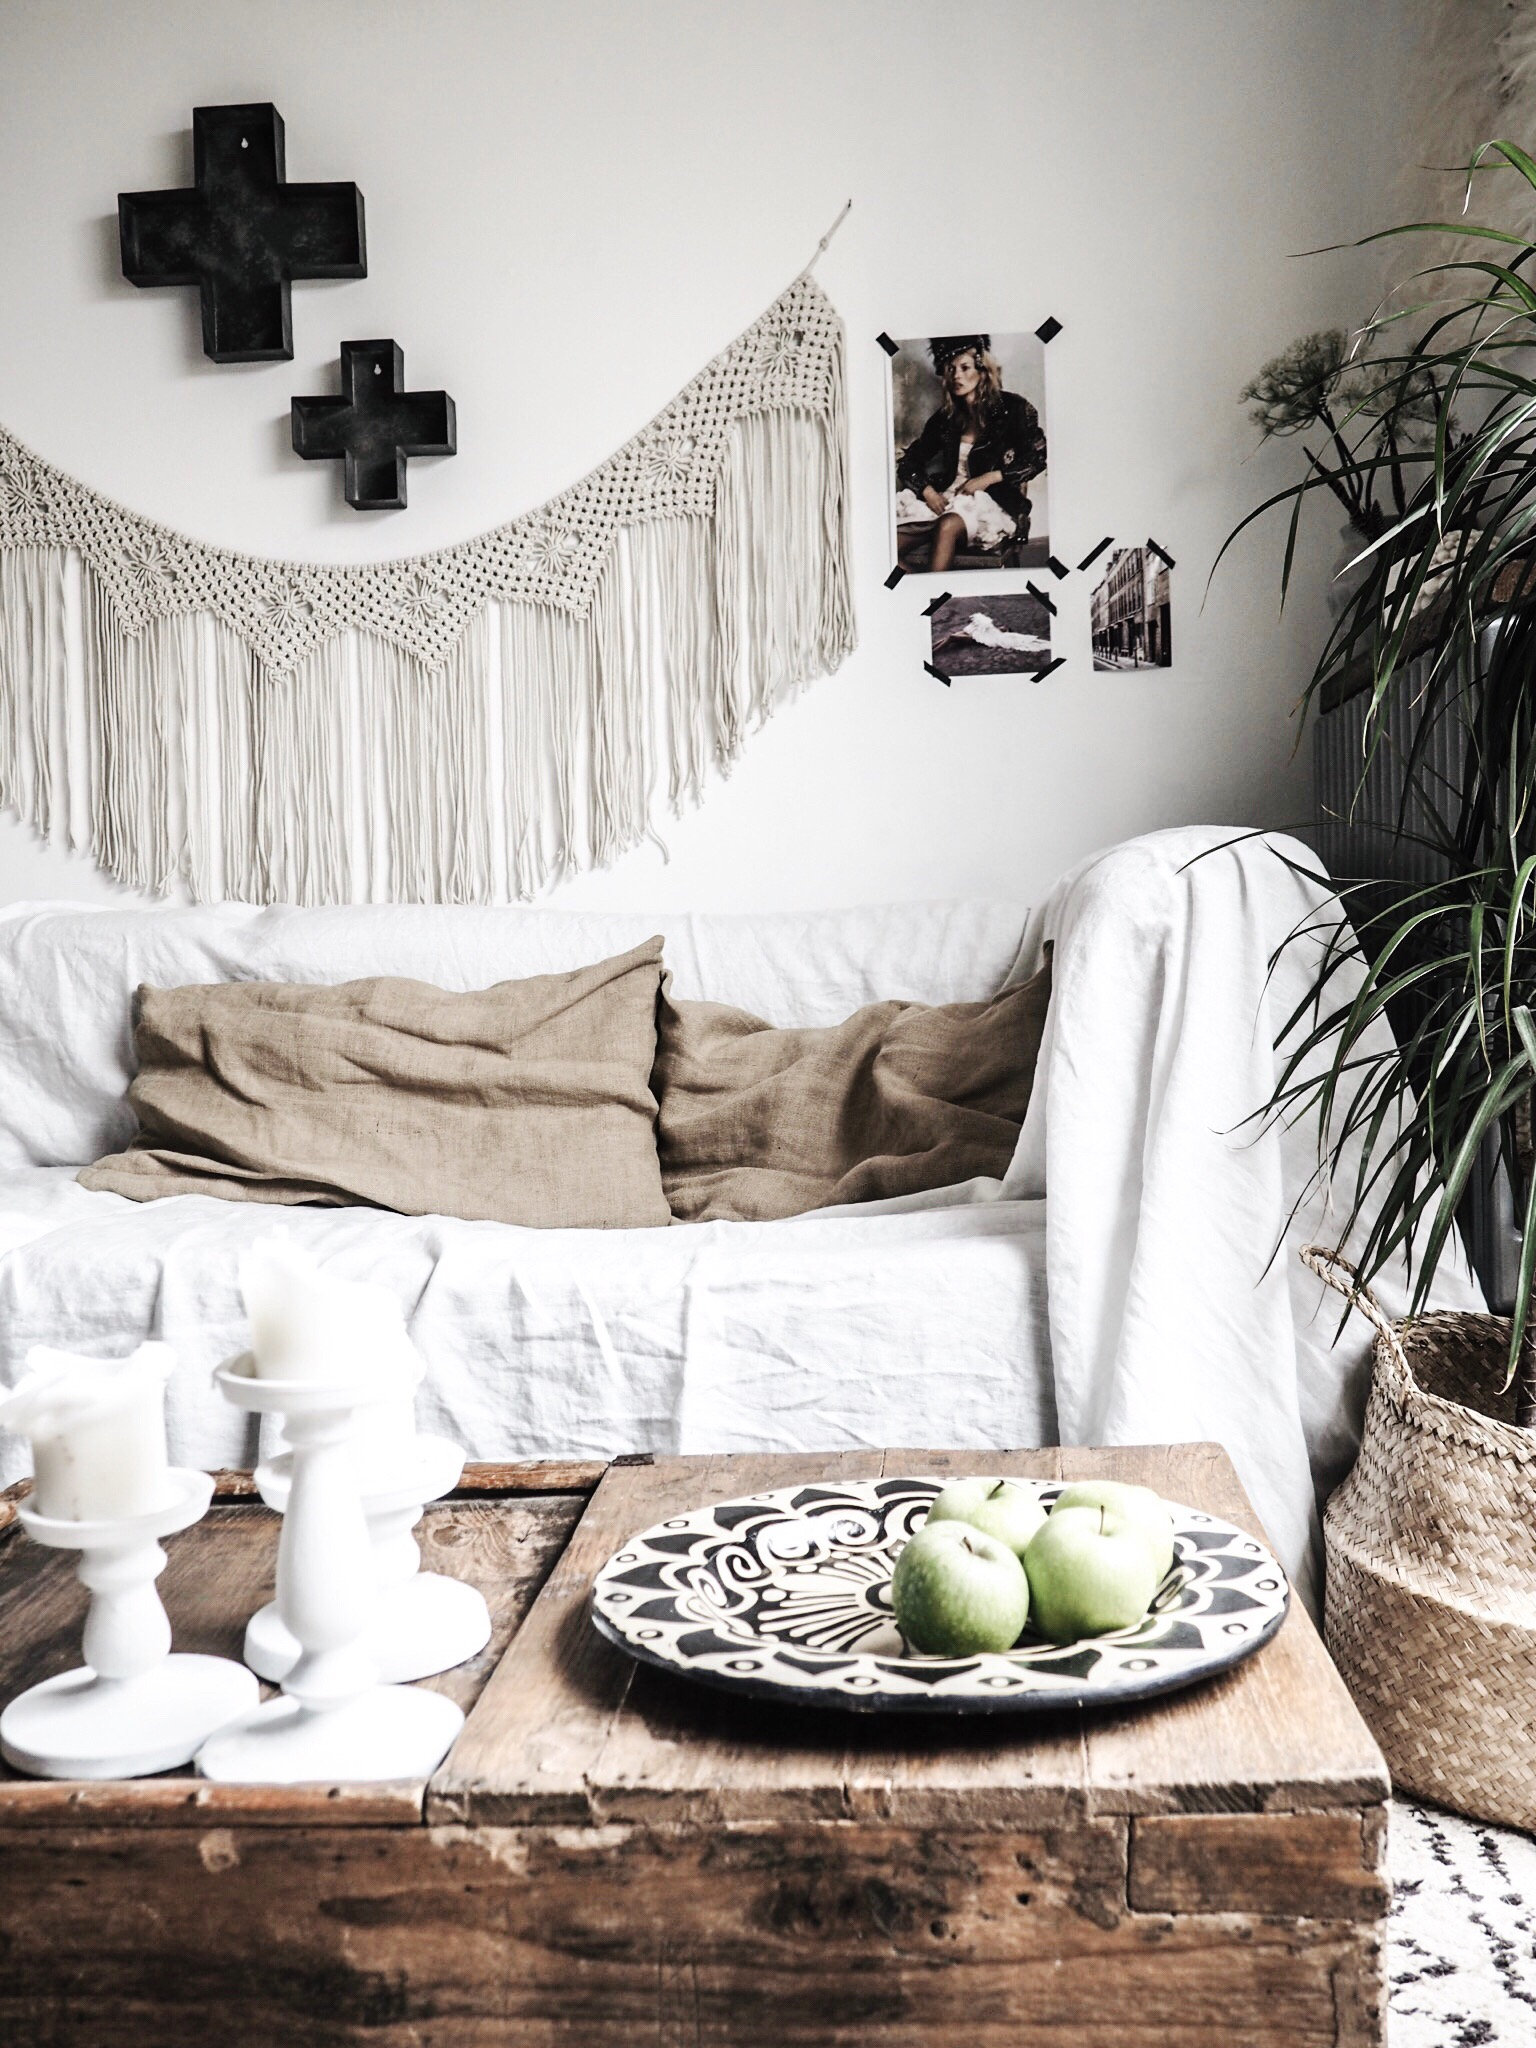 Create the Scandi Boho look with individually crafted products from Heartisania.com.